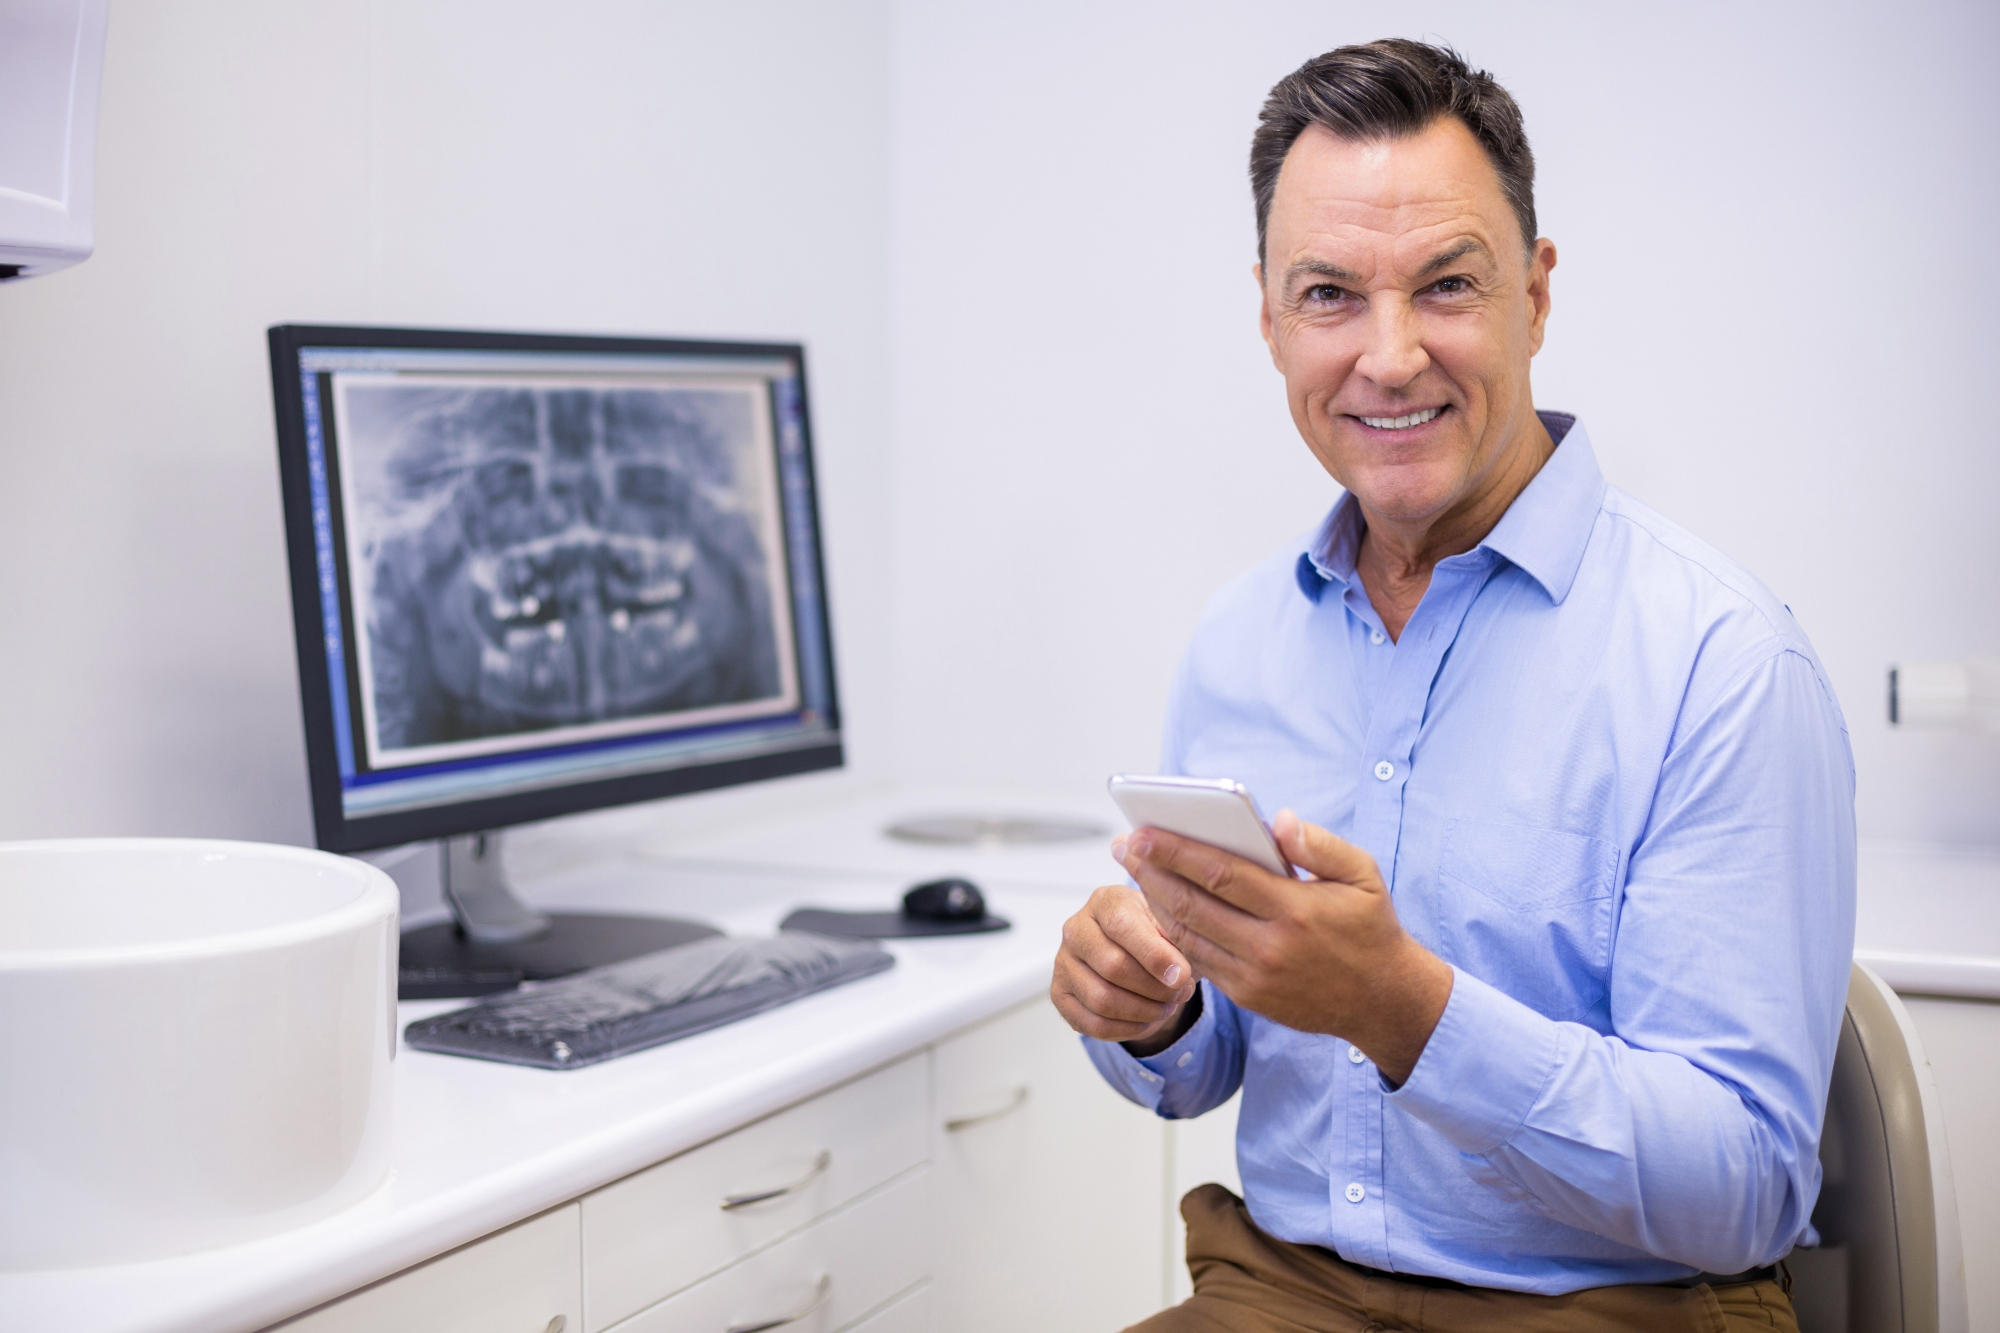 Why Your Dental Practice Website Should Be Mobile Friendly